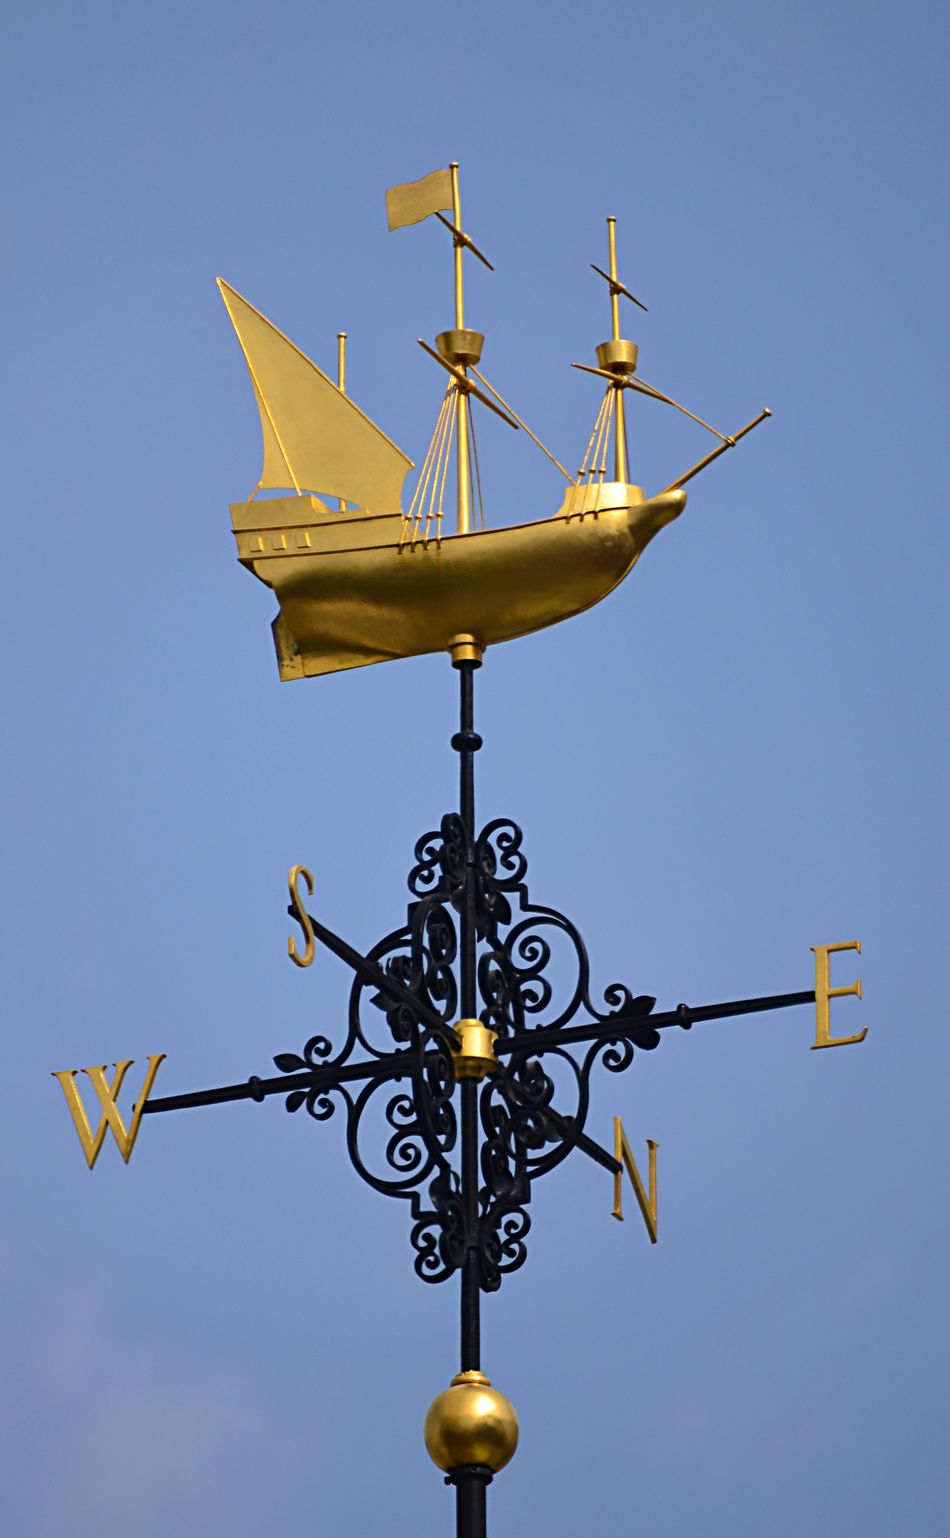 Weathervane with a golden ship in London Directional EyeEm Best Shots Golden Low Angle View Ornate Outdoors Pjpink Ship Vane Weathervane